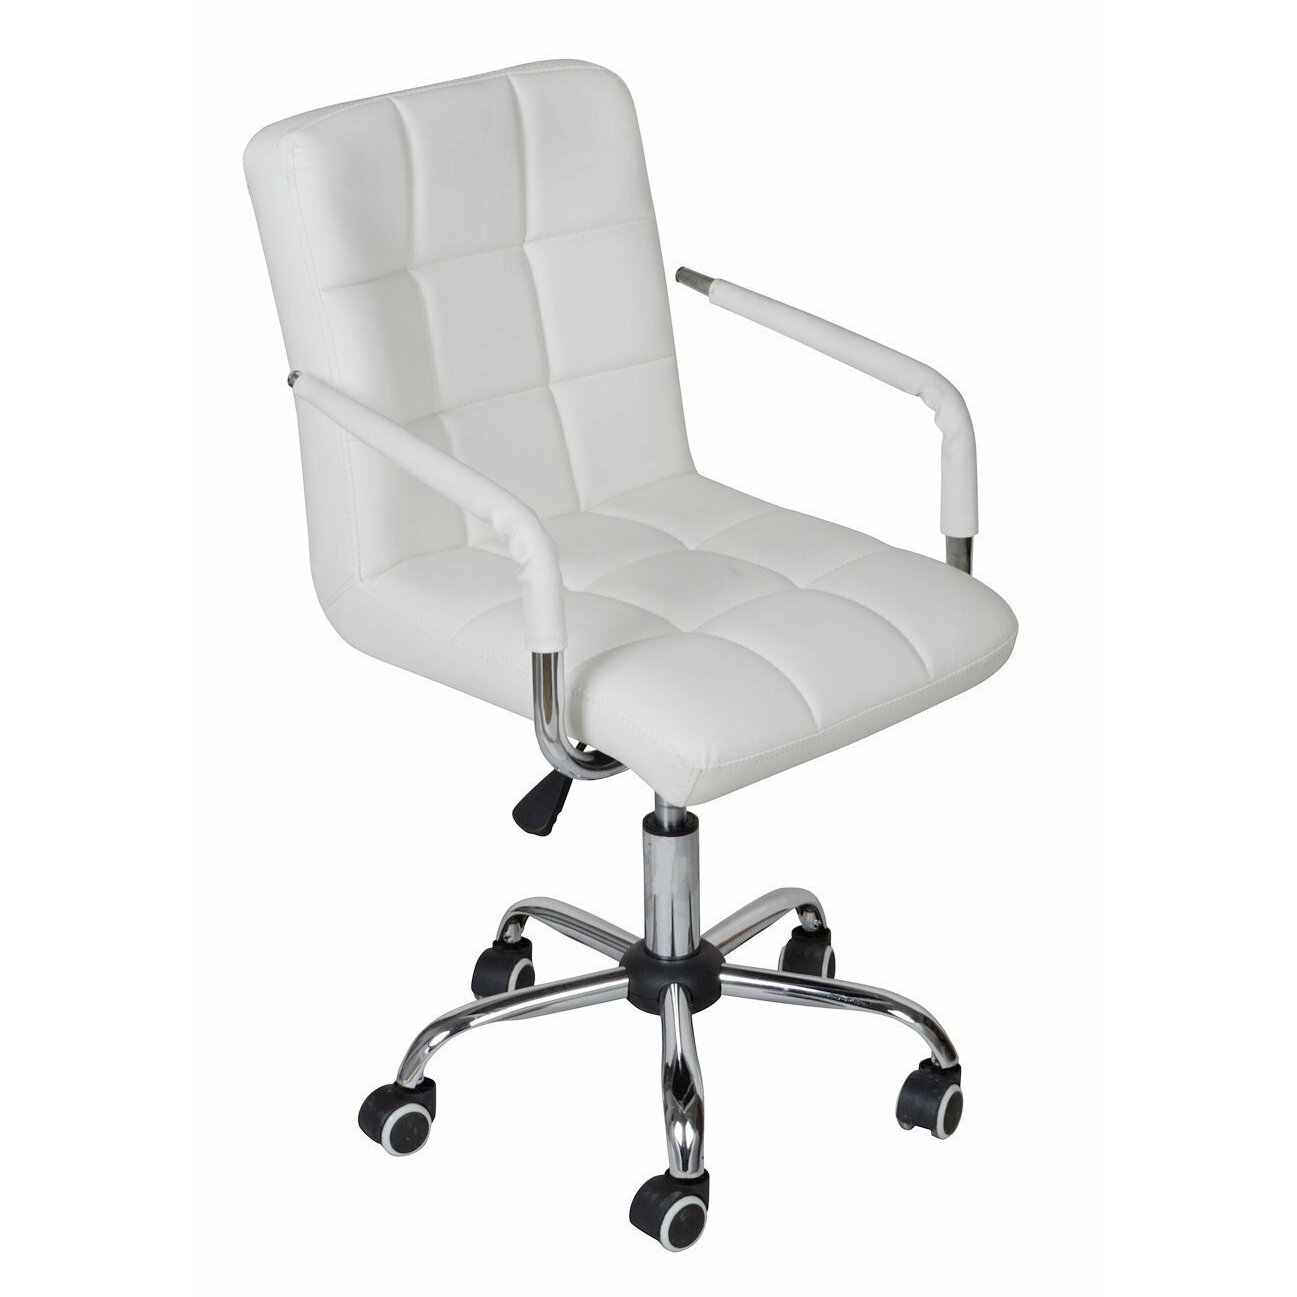 Calhome Adjustable Rolling fice Chair & Reviews